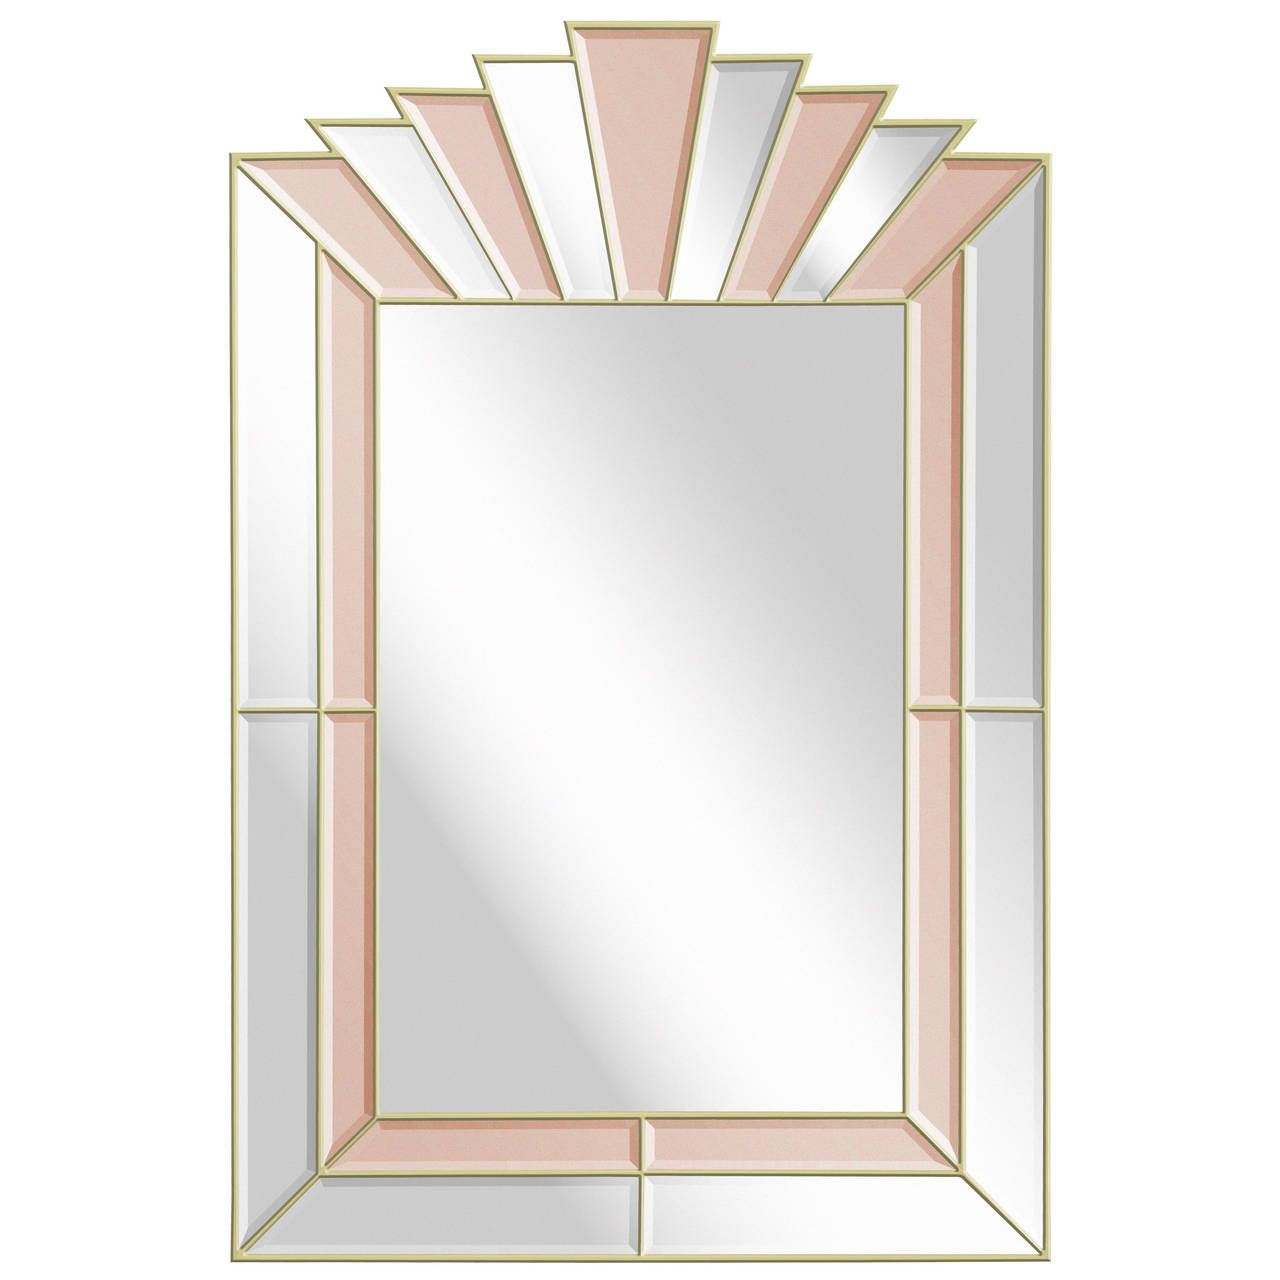 Art Deco Style Mirror 1stdibs Wall Mirror Style Clear Champagne Tinted Mirrored